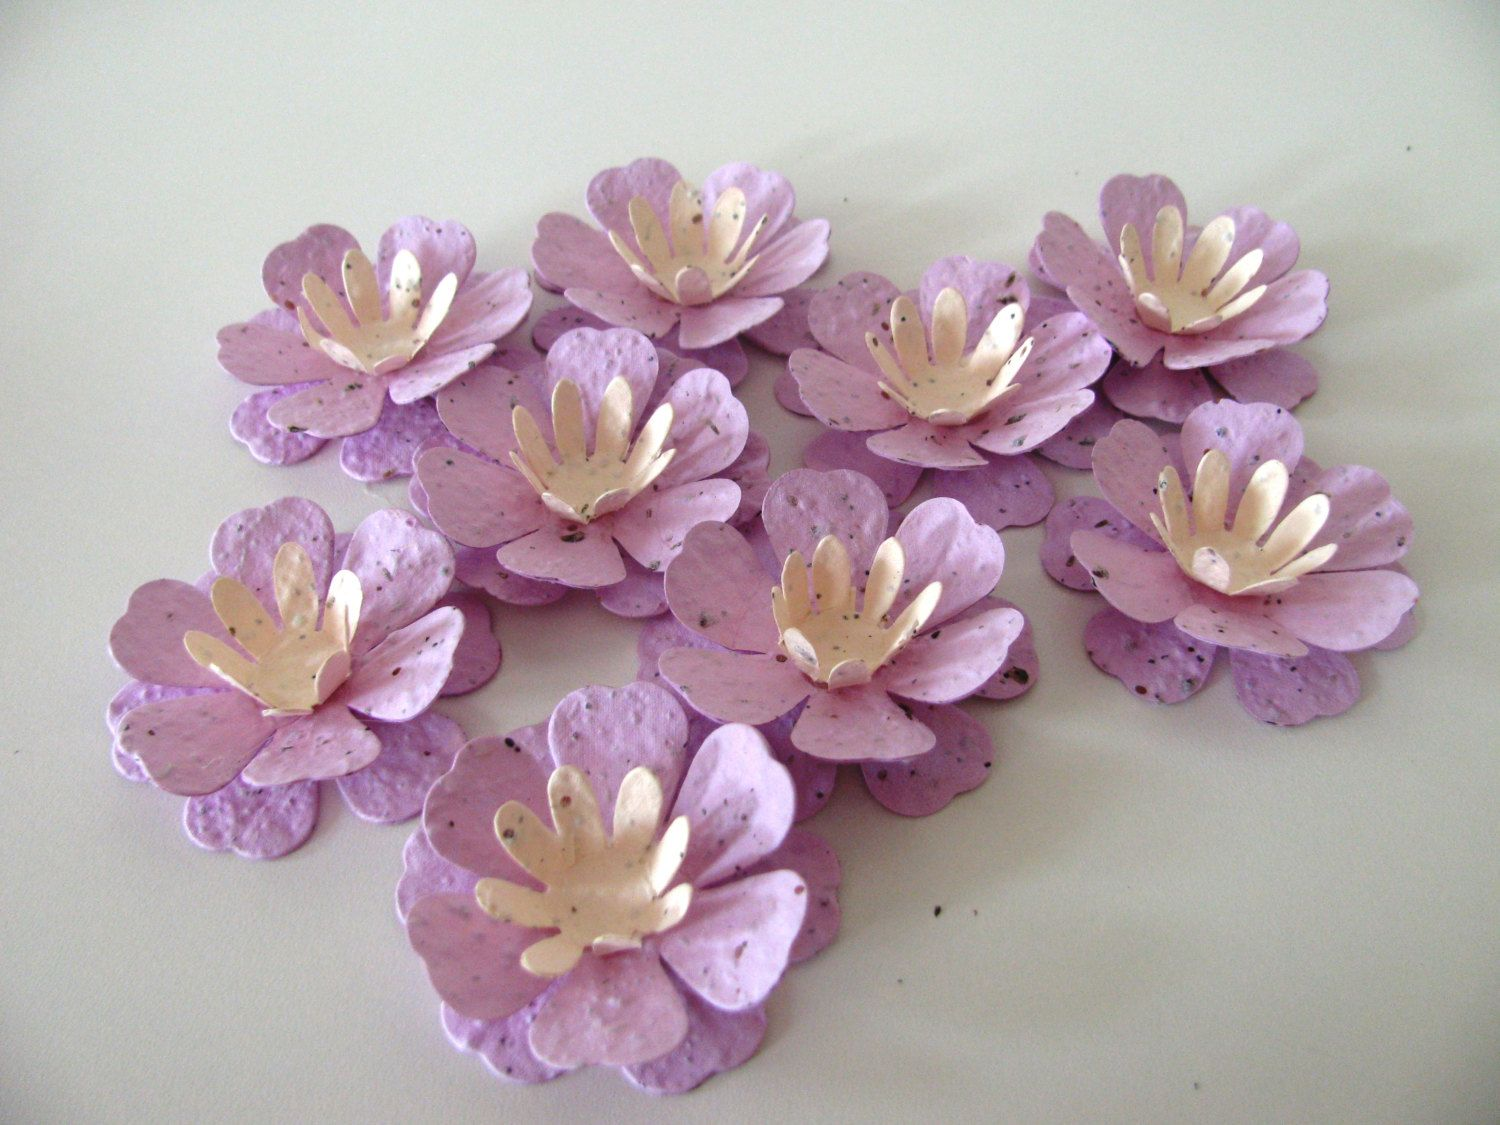 100 LOTUS BLOSSOM SHAPED Wildflower Blend Seed Paper Flowers